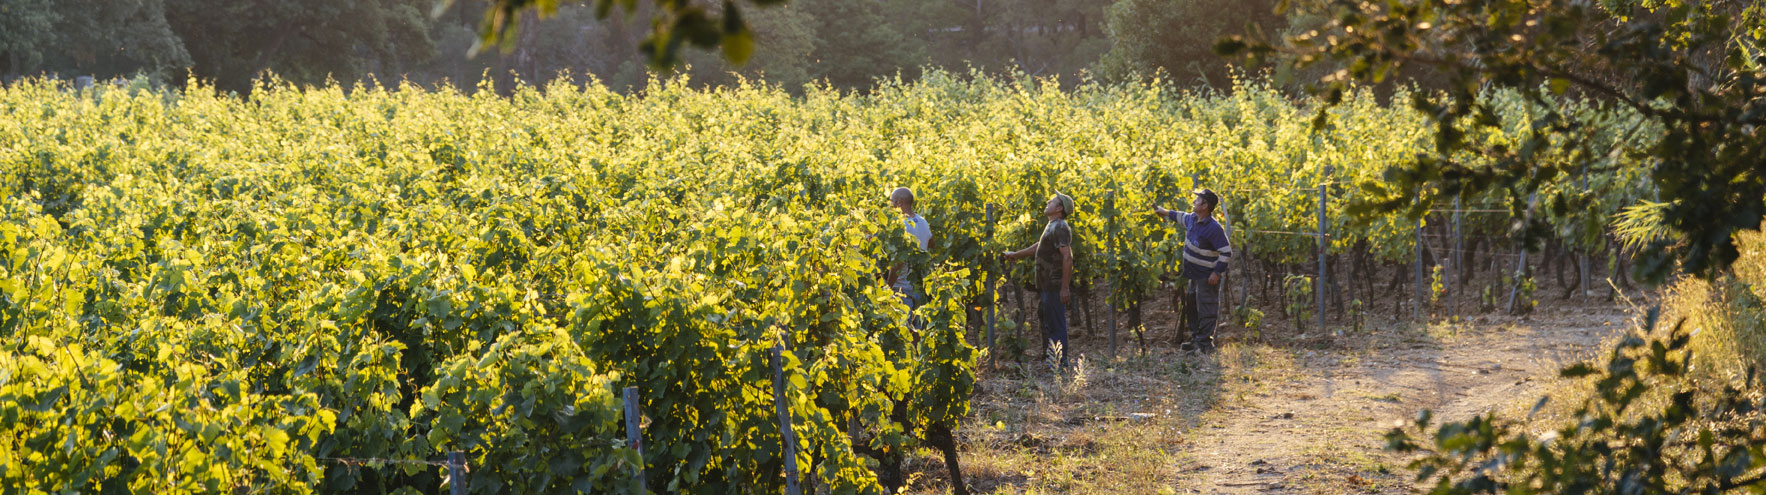 grape picking in green rows of grape growing in barbeyrolles vineyard in Gassin, Frence